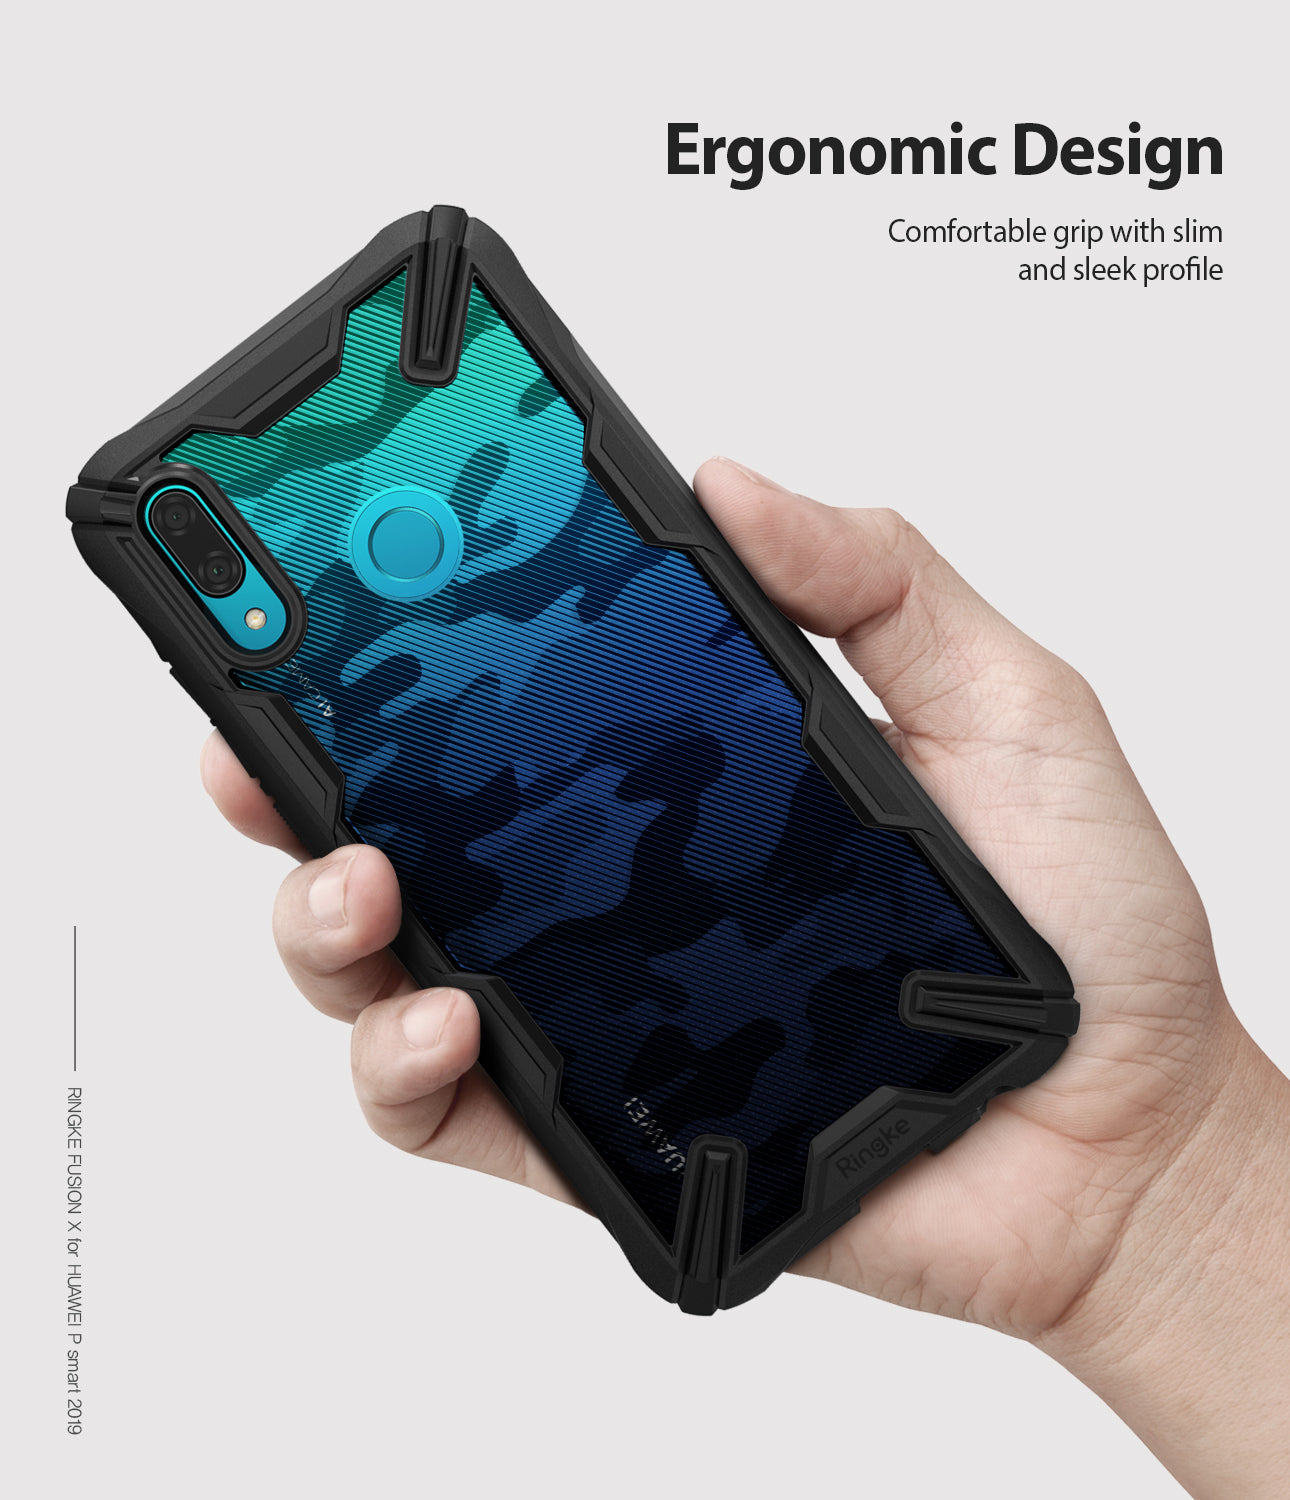 ergonomic hold - comfortable grip with slim and sleek profile